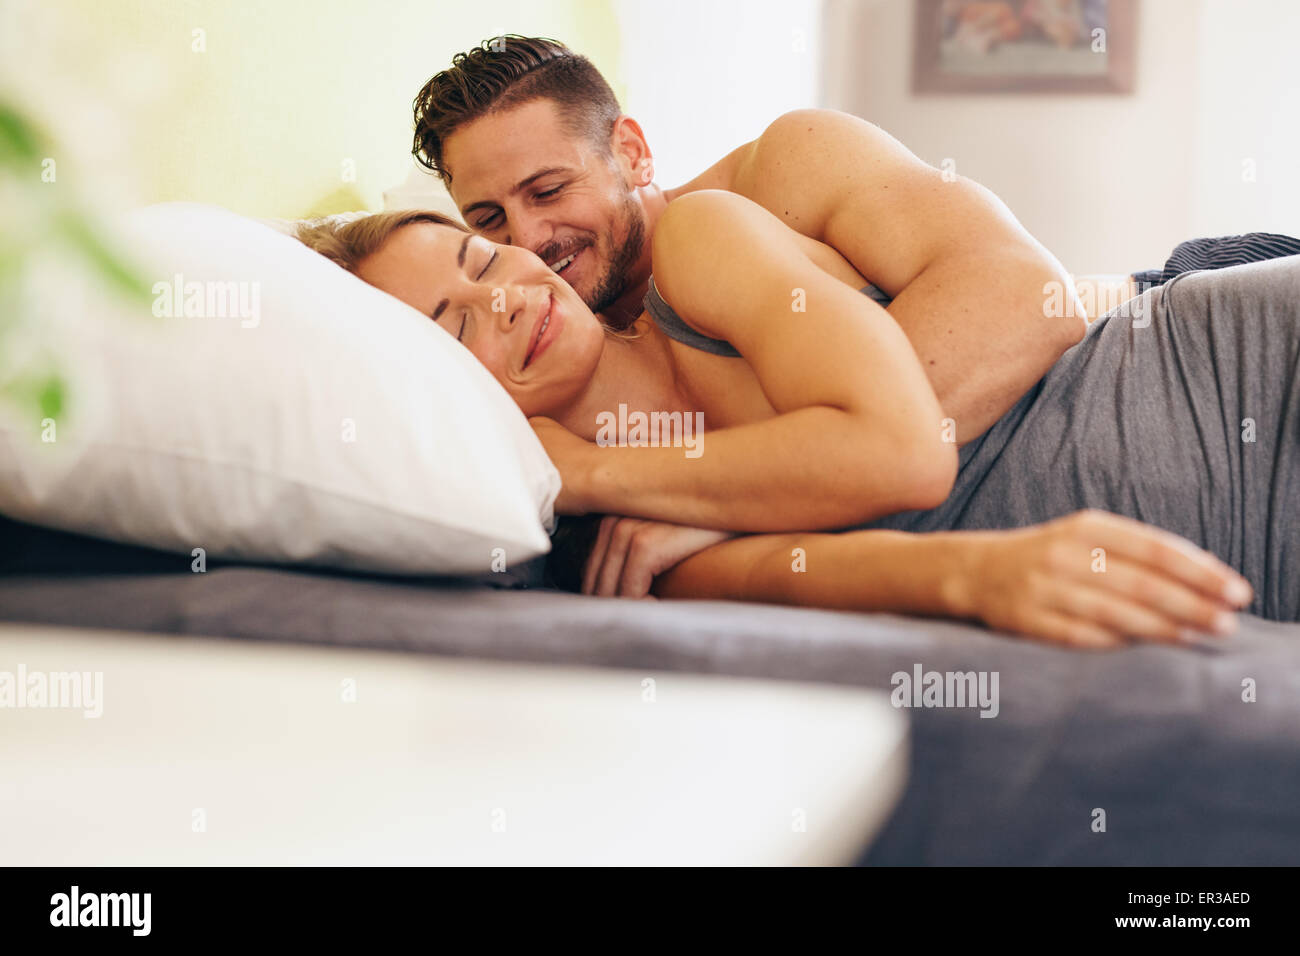 A Man And A Woman In Bed Together